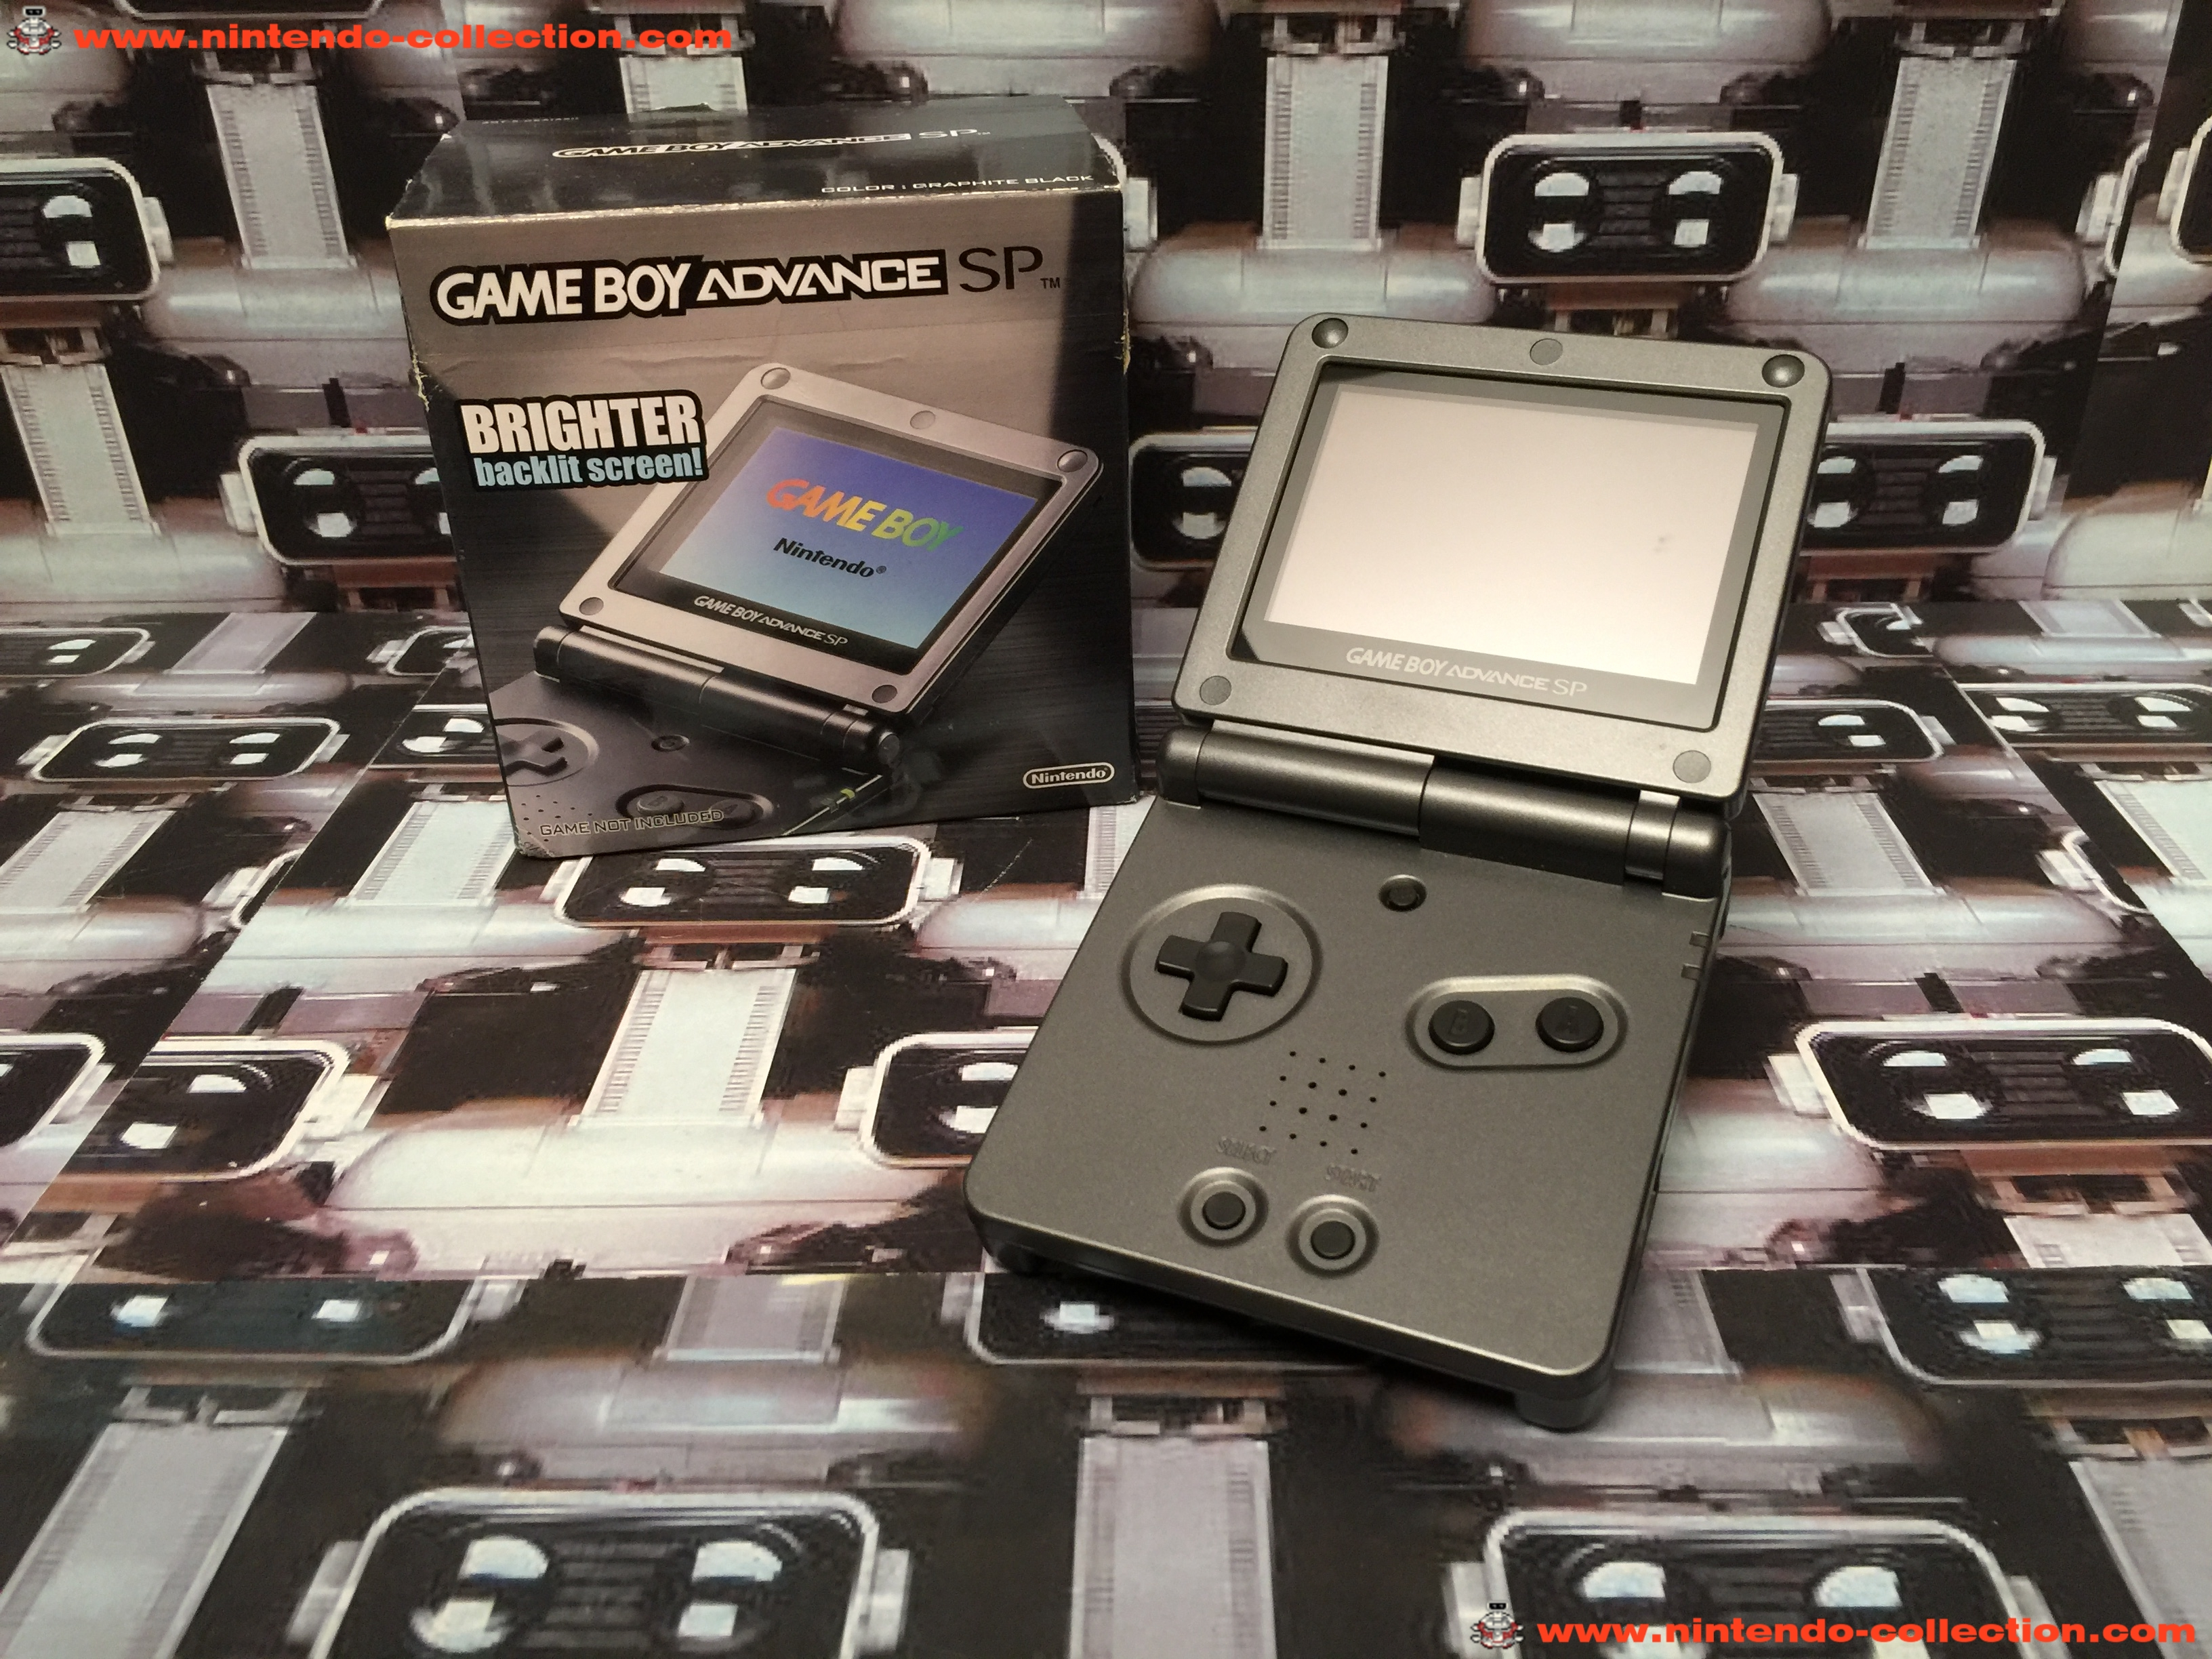 www.nintendo-collection.com - Gameboy Advance GBA SP Onyx Black Onyx Noir edition Hong Kong - 03